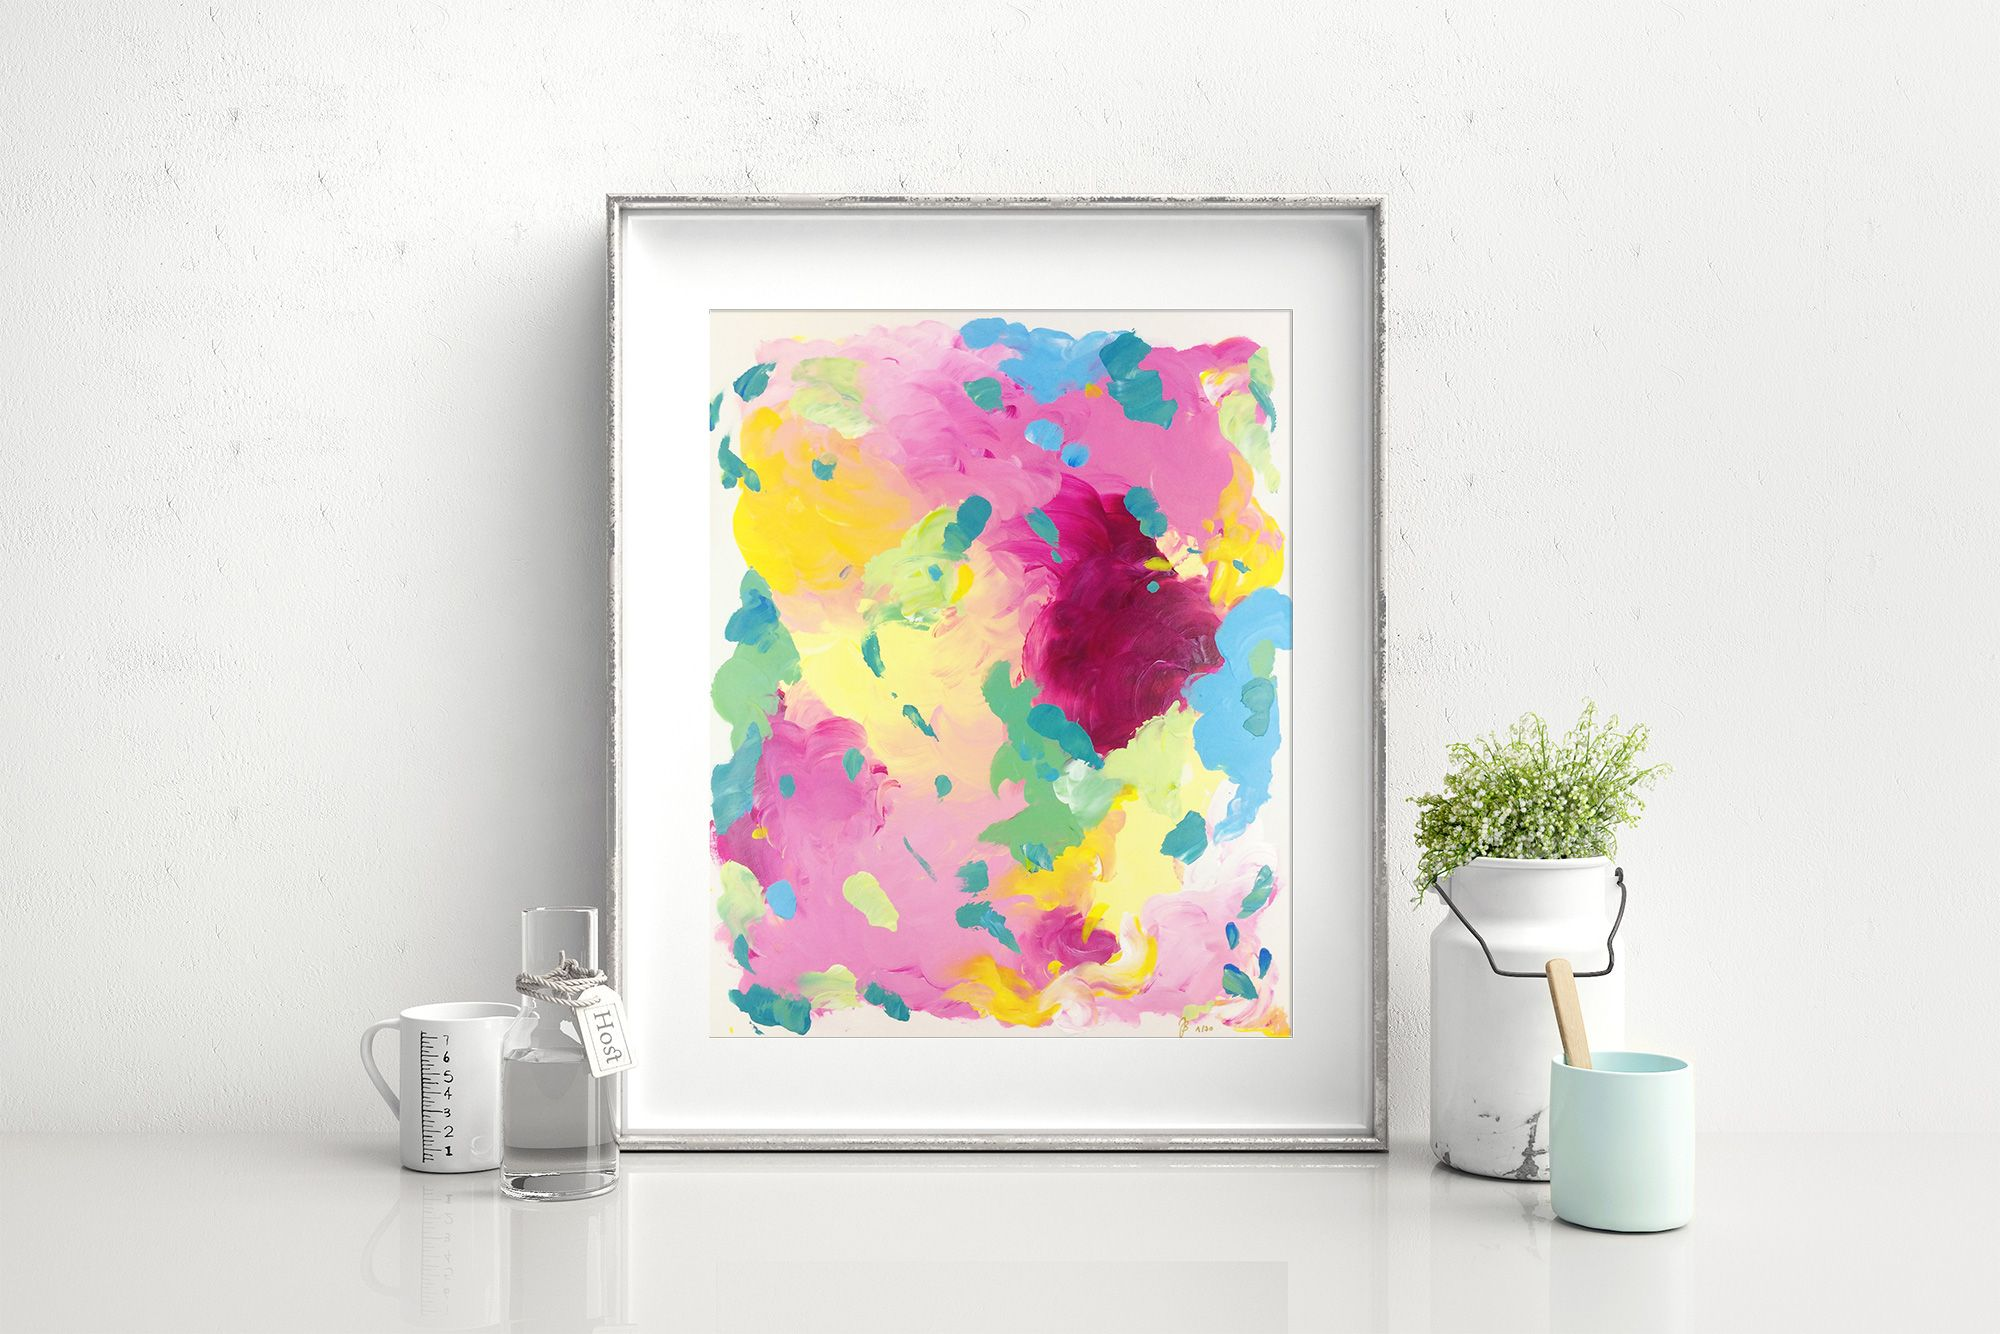 """New Beginnings"", acrylic on paper, A3 (11,69x16,53""), 230$ (free worldwide shipping if you subscribe to my Artletter here: https://www.juliabadow.space/art/ ) colorful, abstract, expressionist, intuitive painting. By Julia Badow"